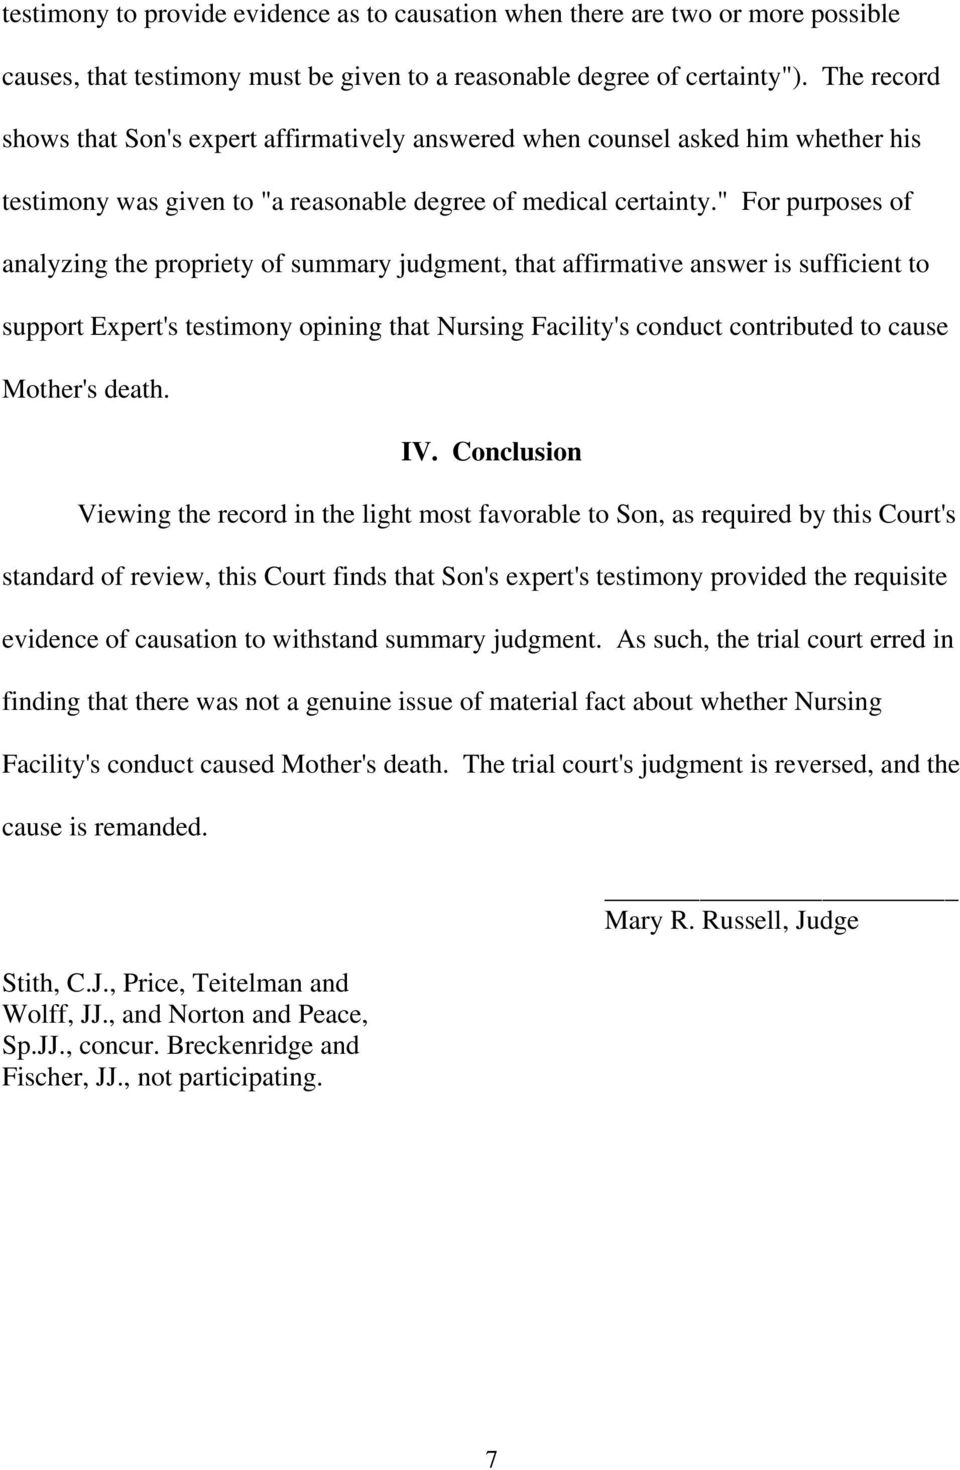 """ For purposes of analyzing the propriety of summary judgment, that affirmative answer is sufficient to support Expert's testimony opining that Nursing Facility's conduct contributed to cause"